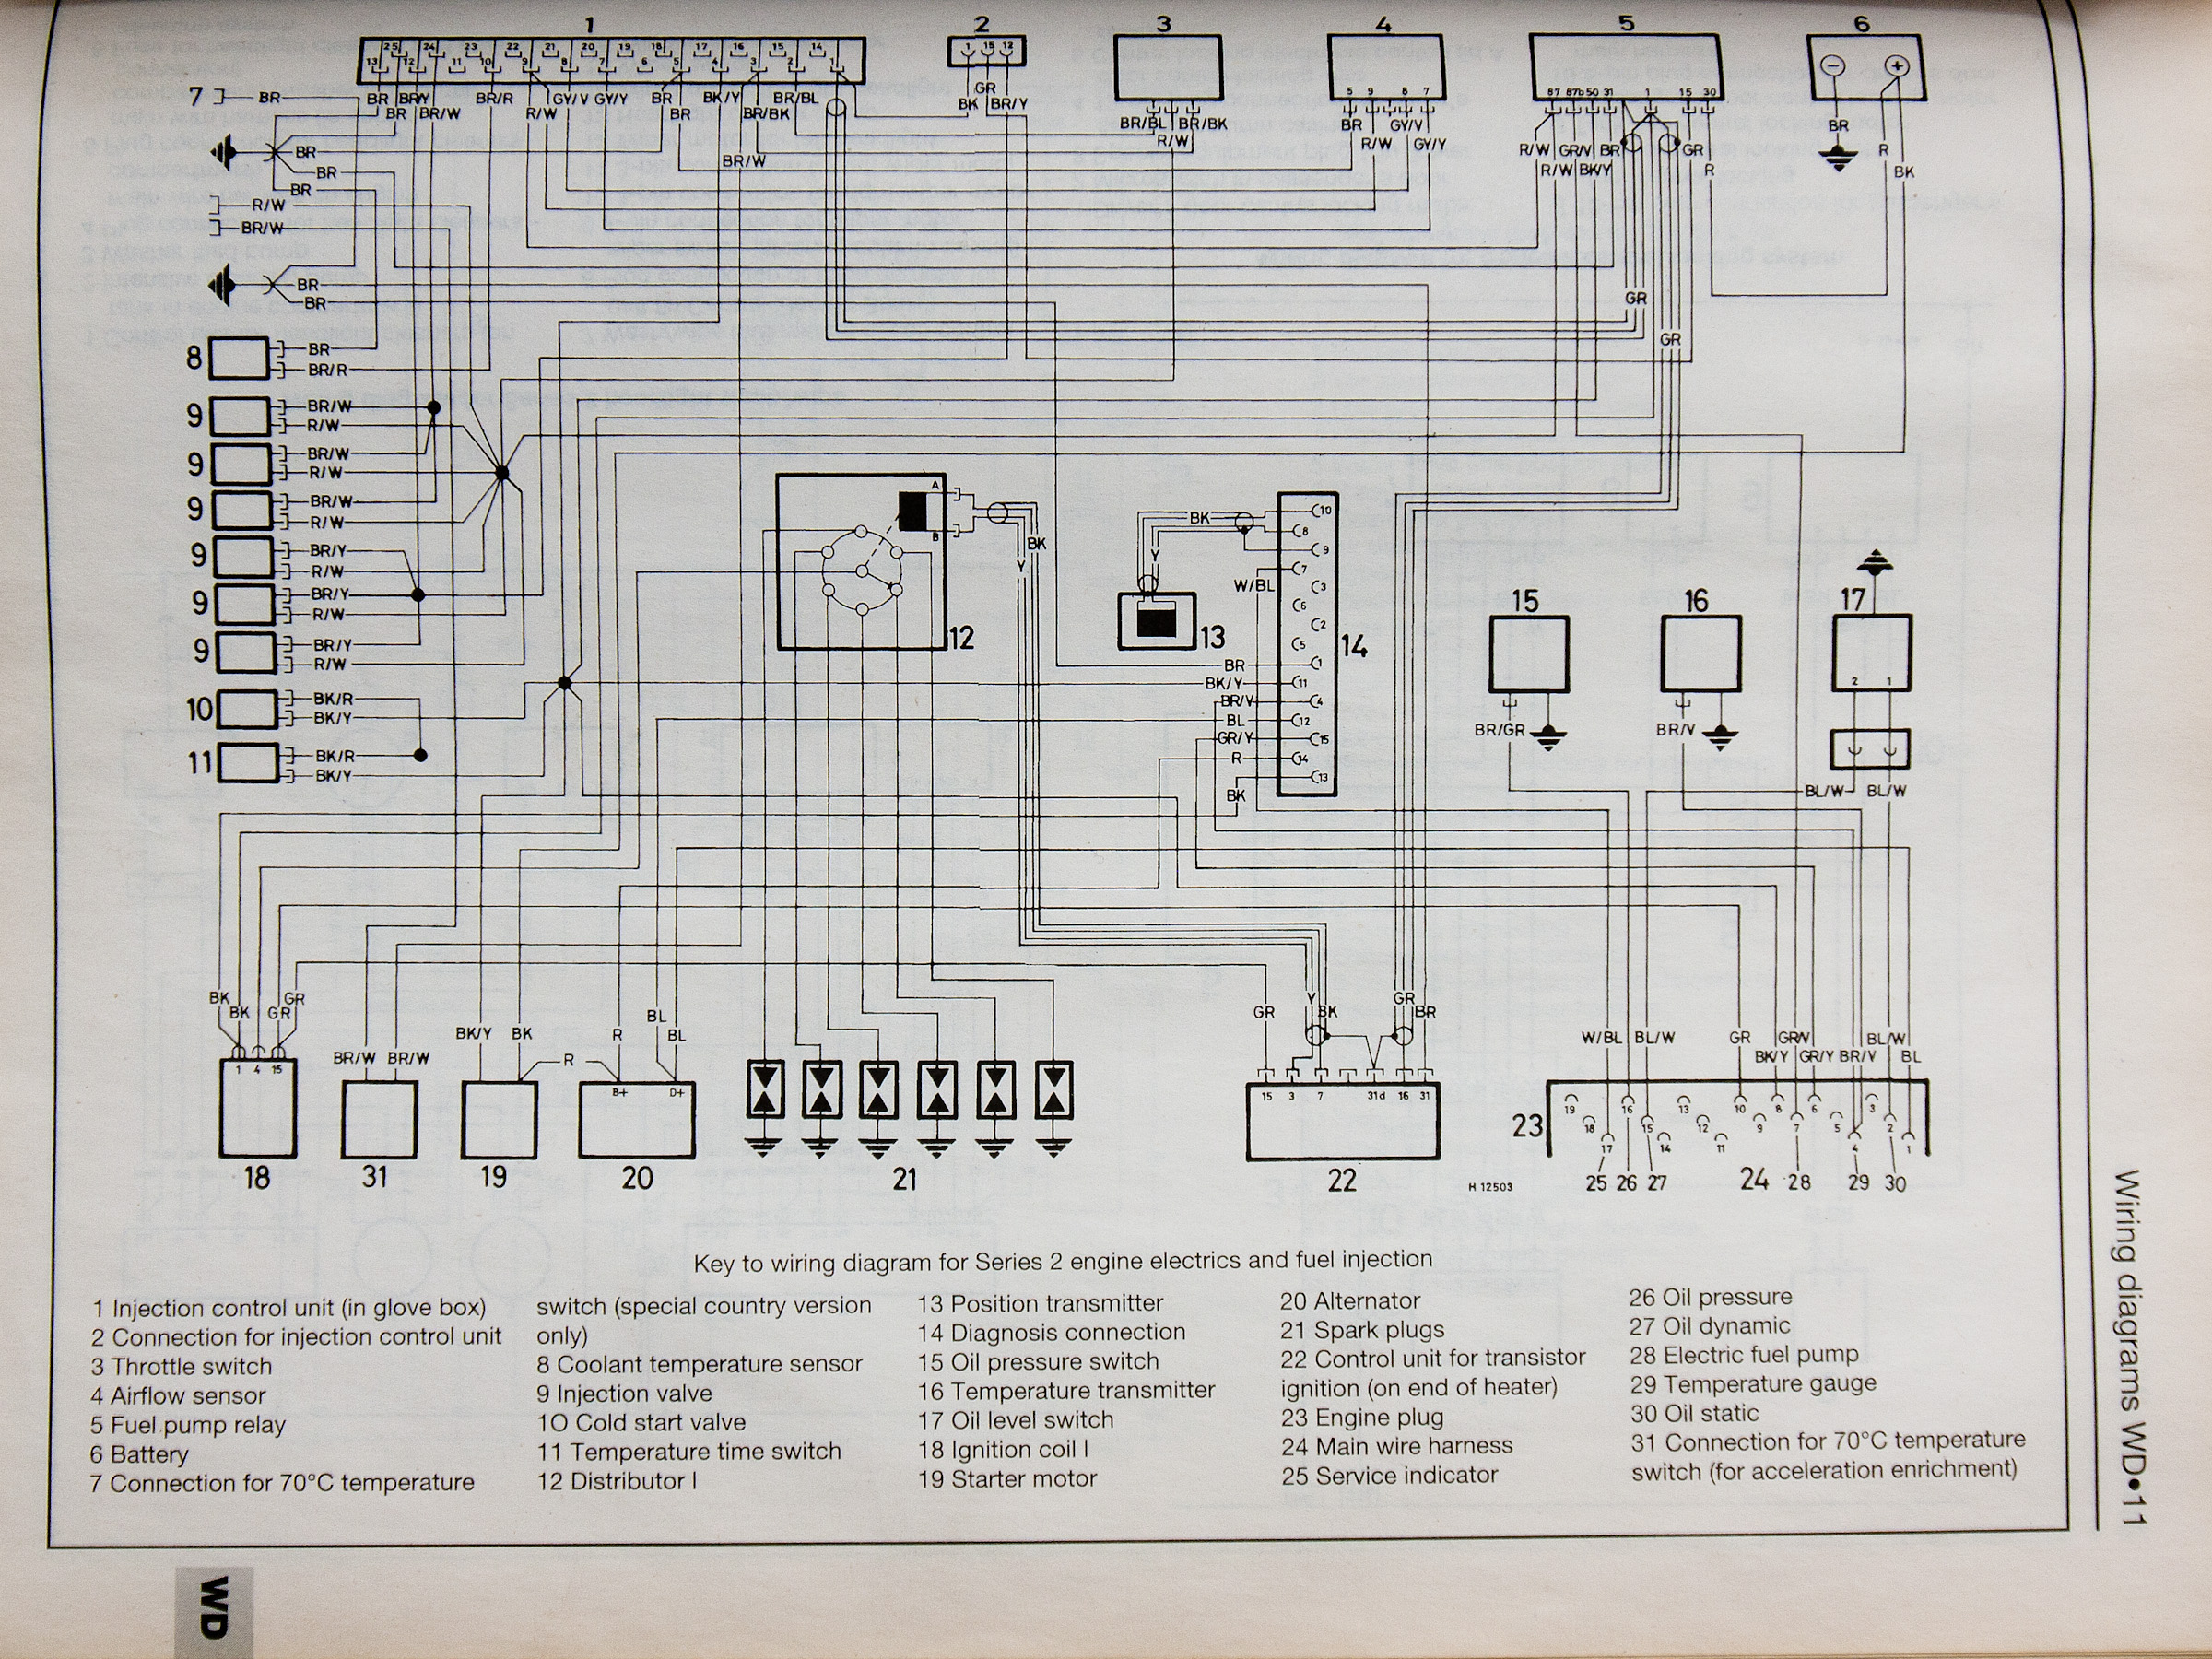 e30_ljetronic_001 e30_ljetronic_001 jpg e30 ignition wiring diagram at gsmportal.co